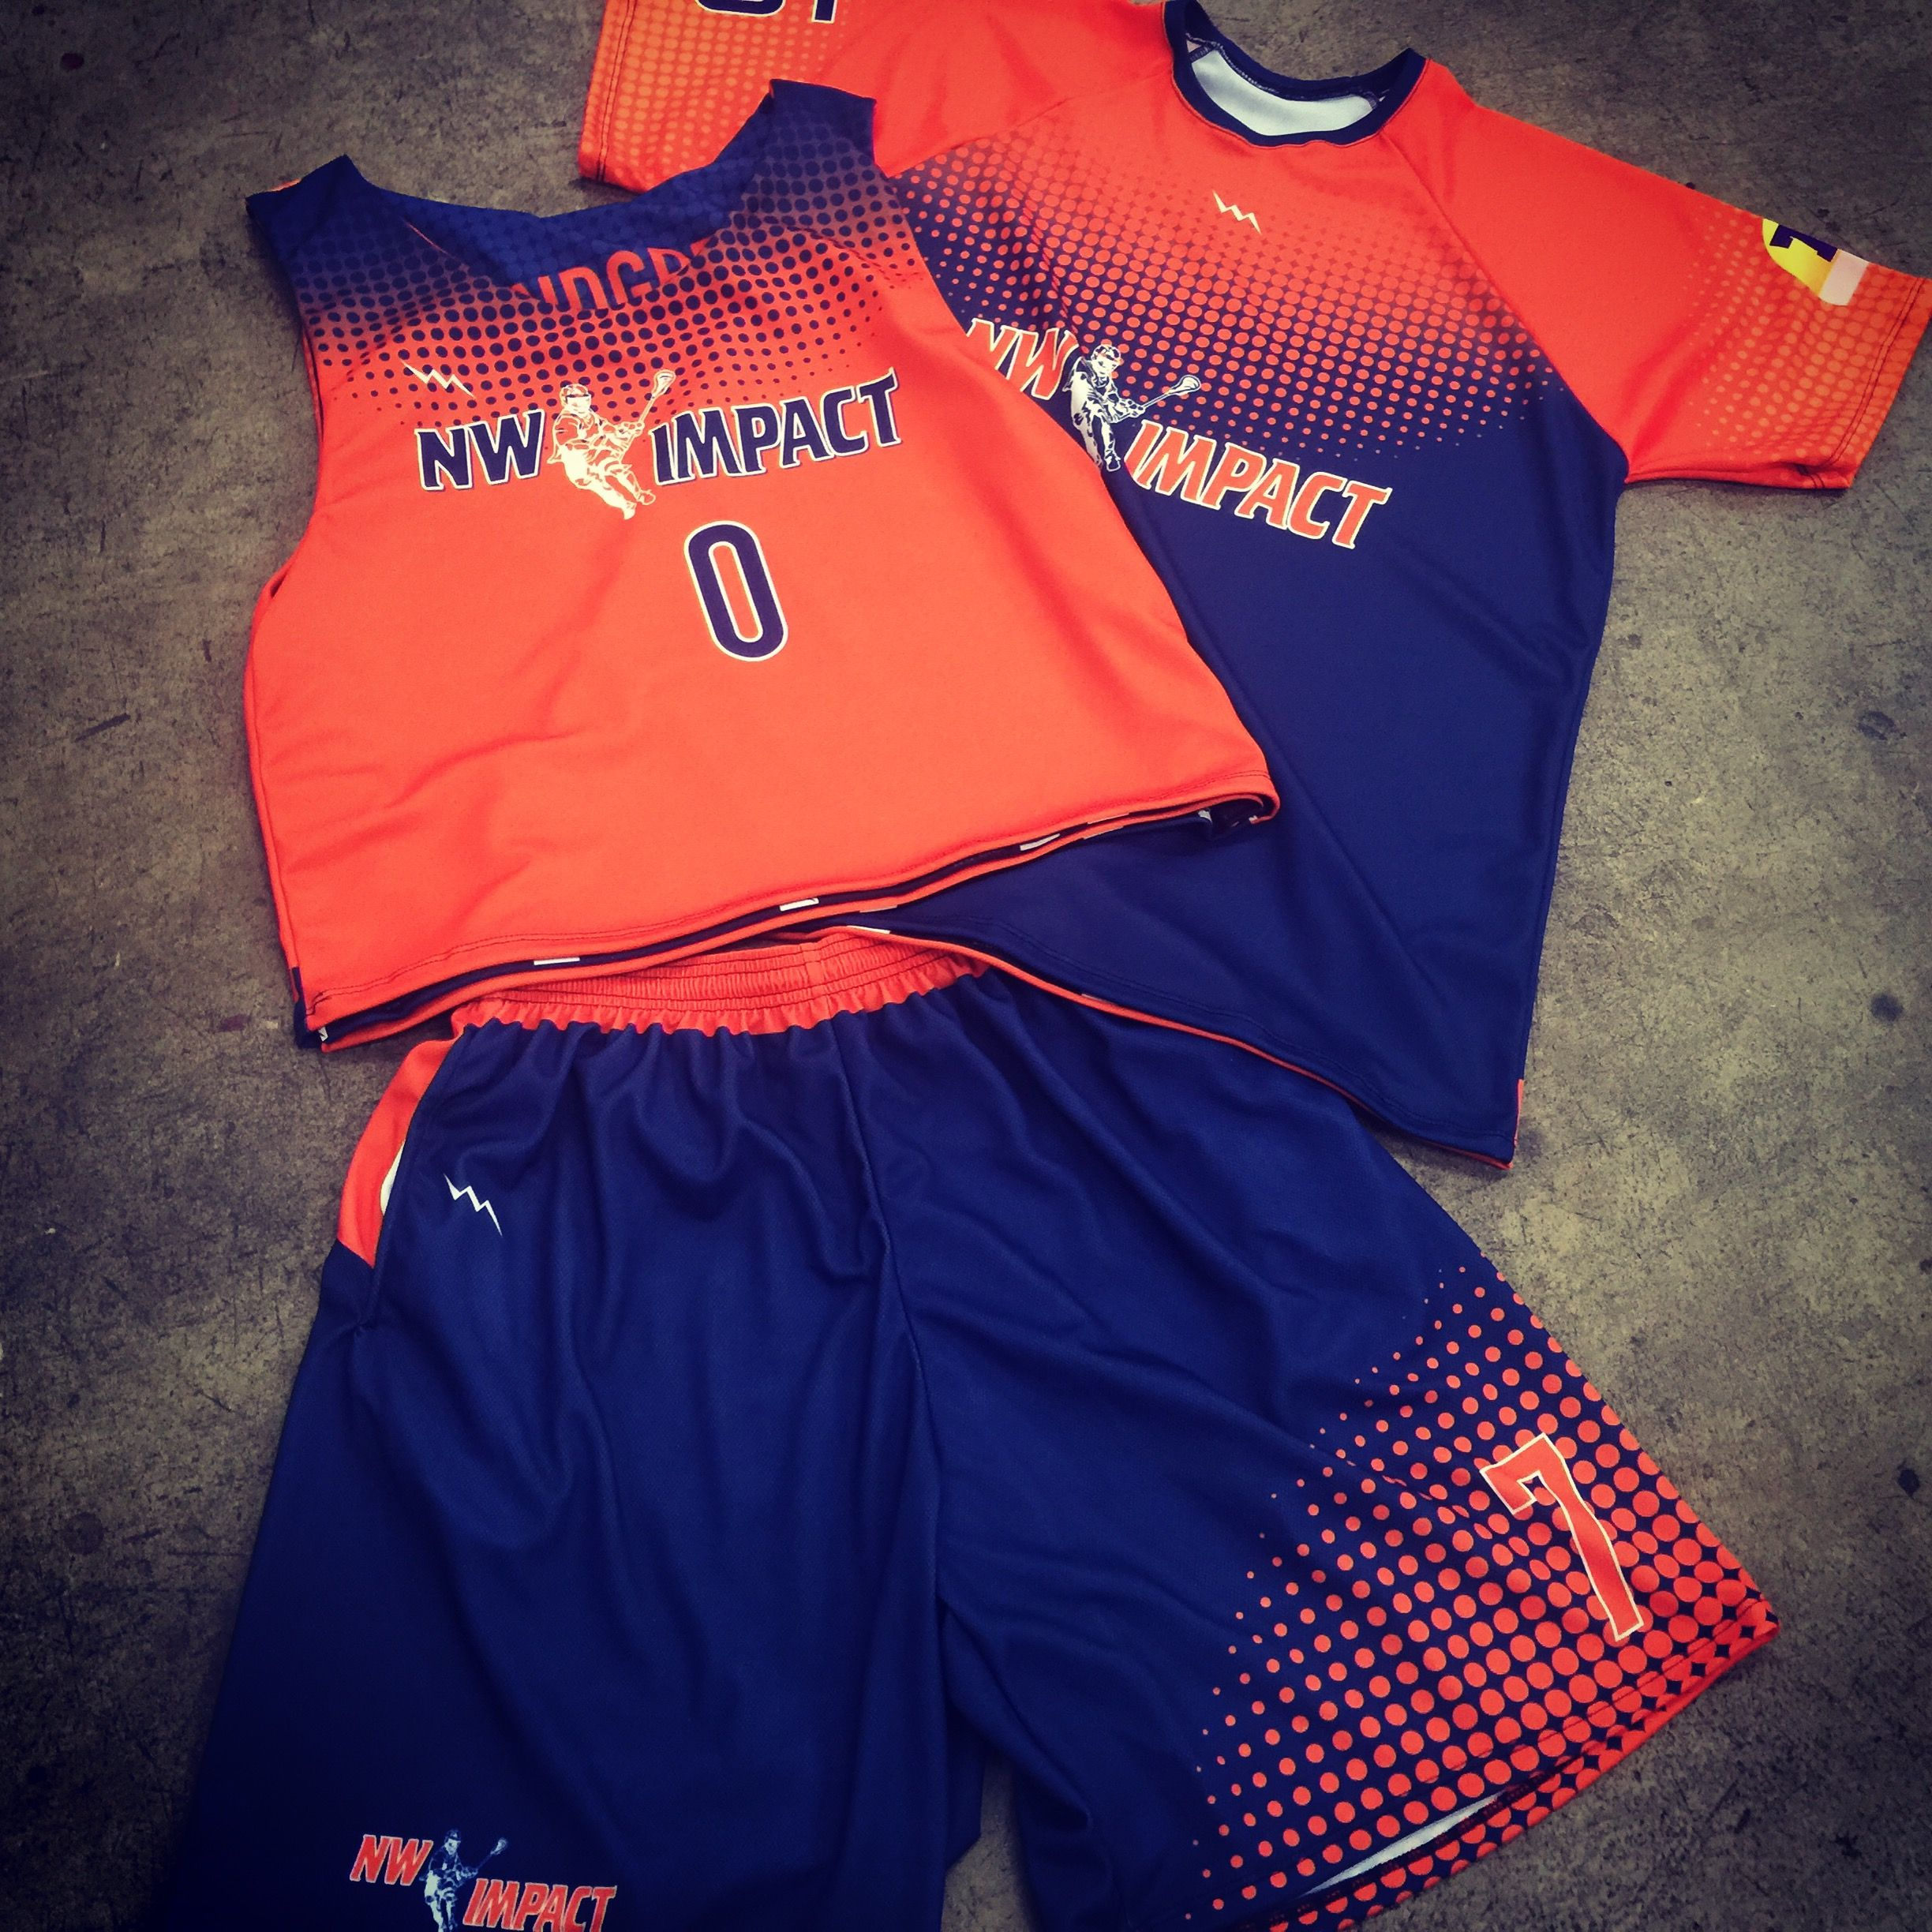 Get Custom Team Uniforms Including Reversibles Shorts And Shooter Shirts Made To Order In Maryland Usa Lacrosse Uniform Lacrosse Basketball Uniforms Design